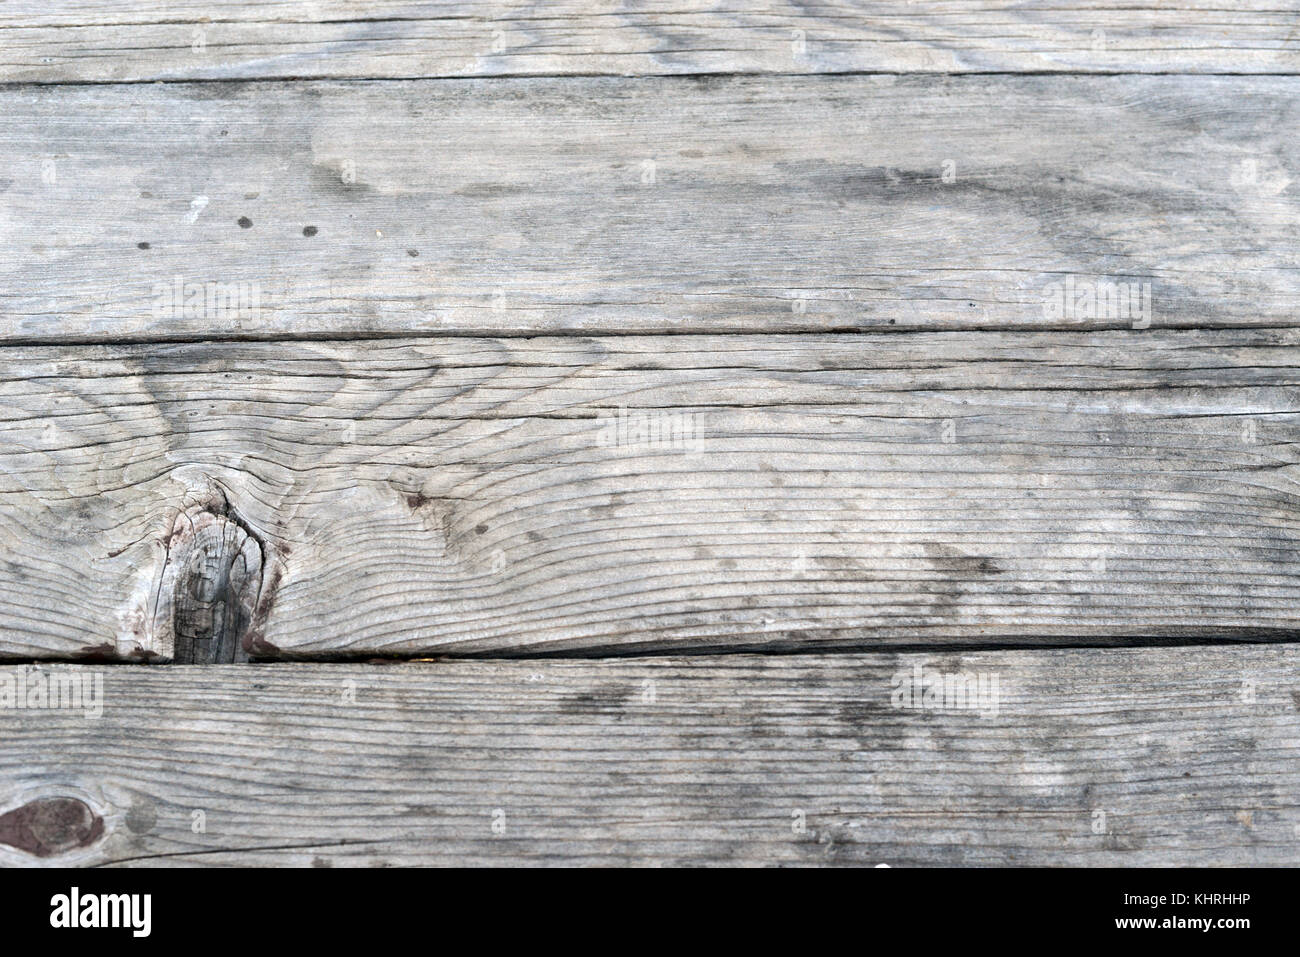 Old antique wood planks picnic table stock photo 165861186 alamy old antique wood planks picnic table watchthetrailerfo